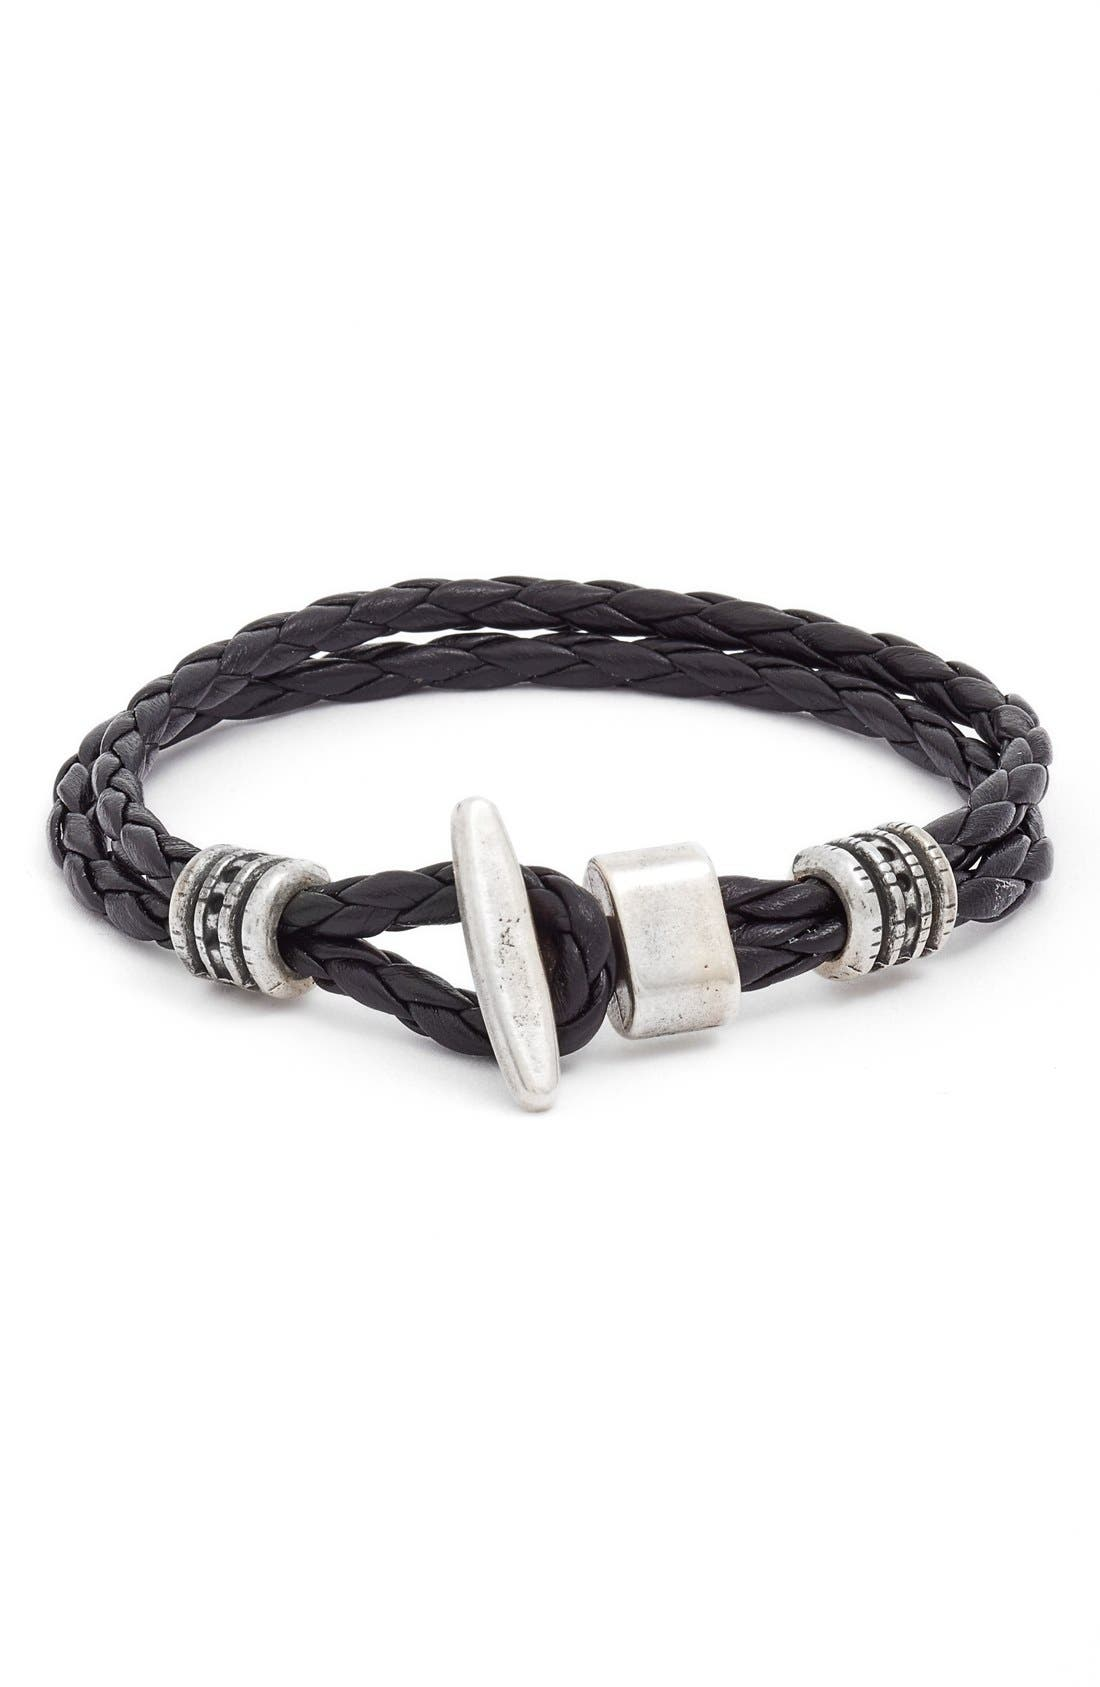 Braided Leather Bracelet,                         Main,                         color, Black